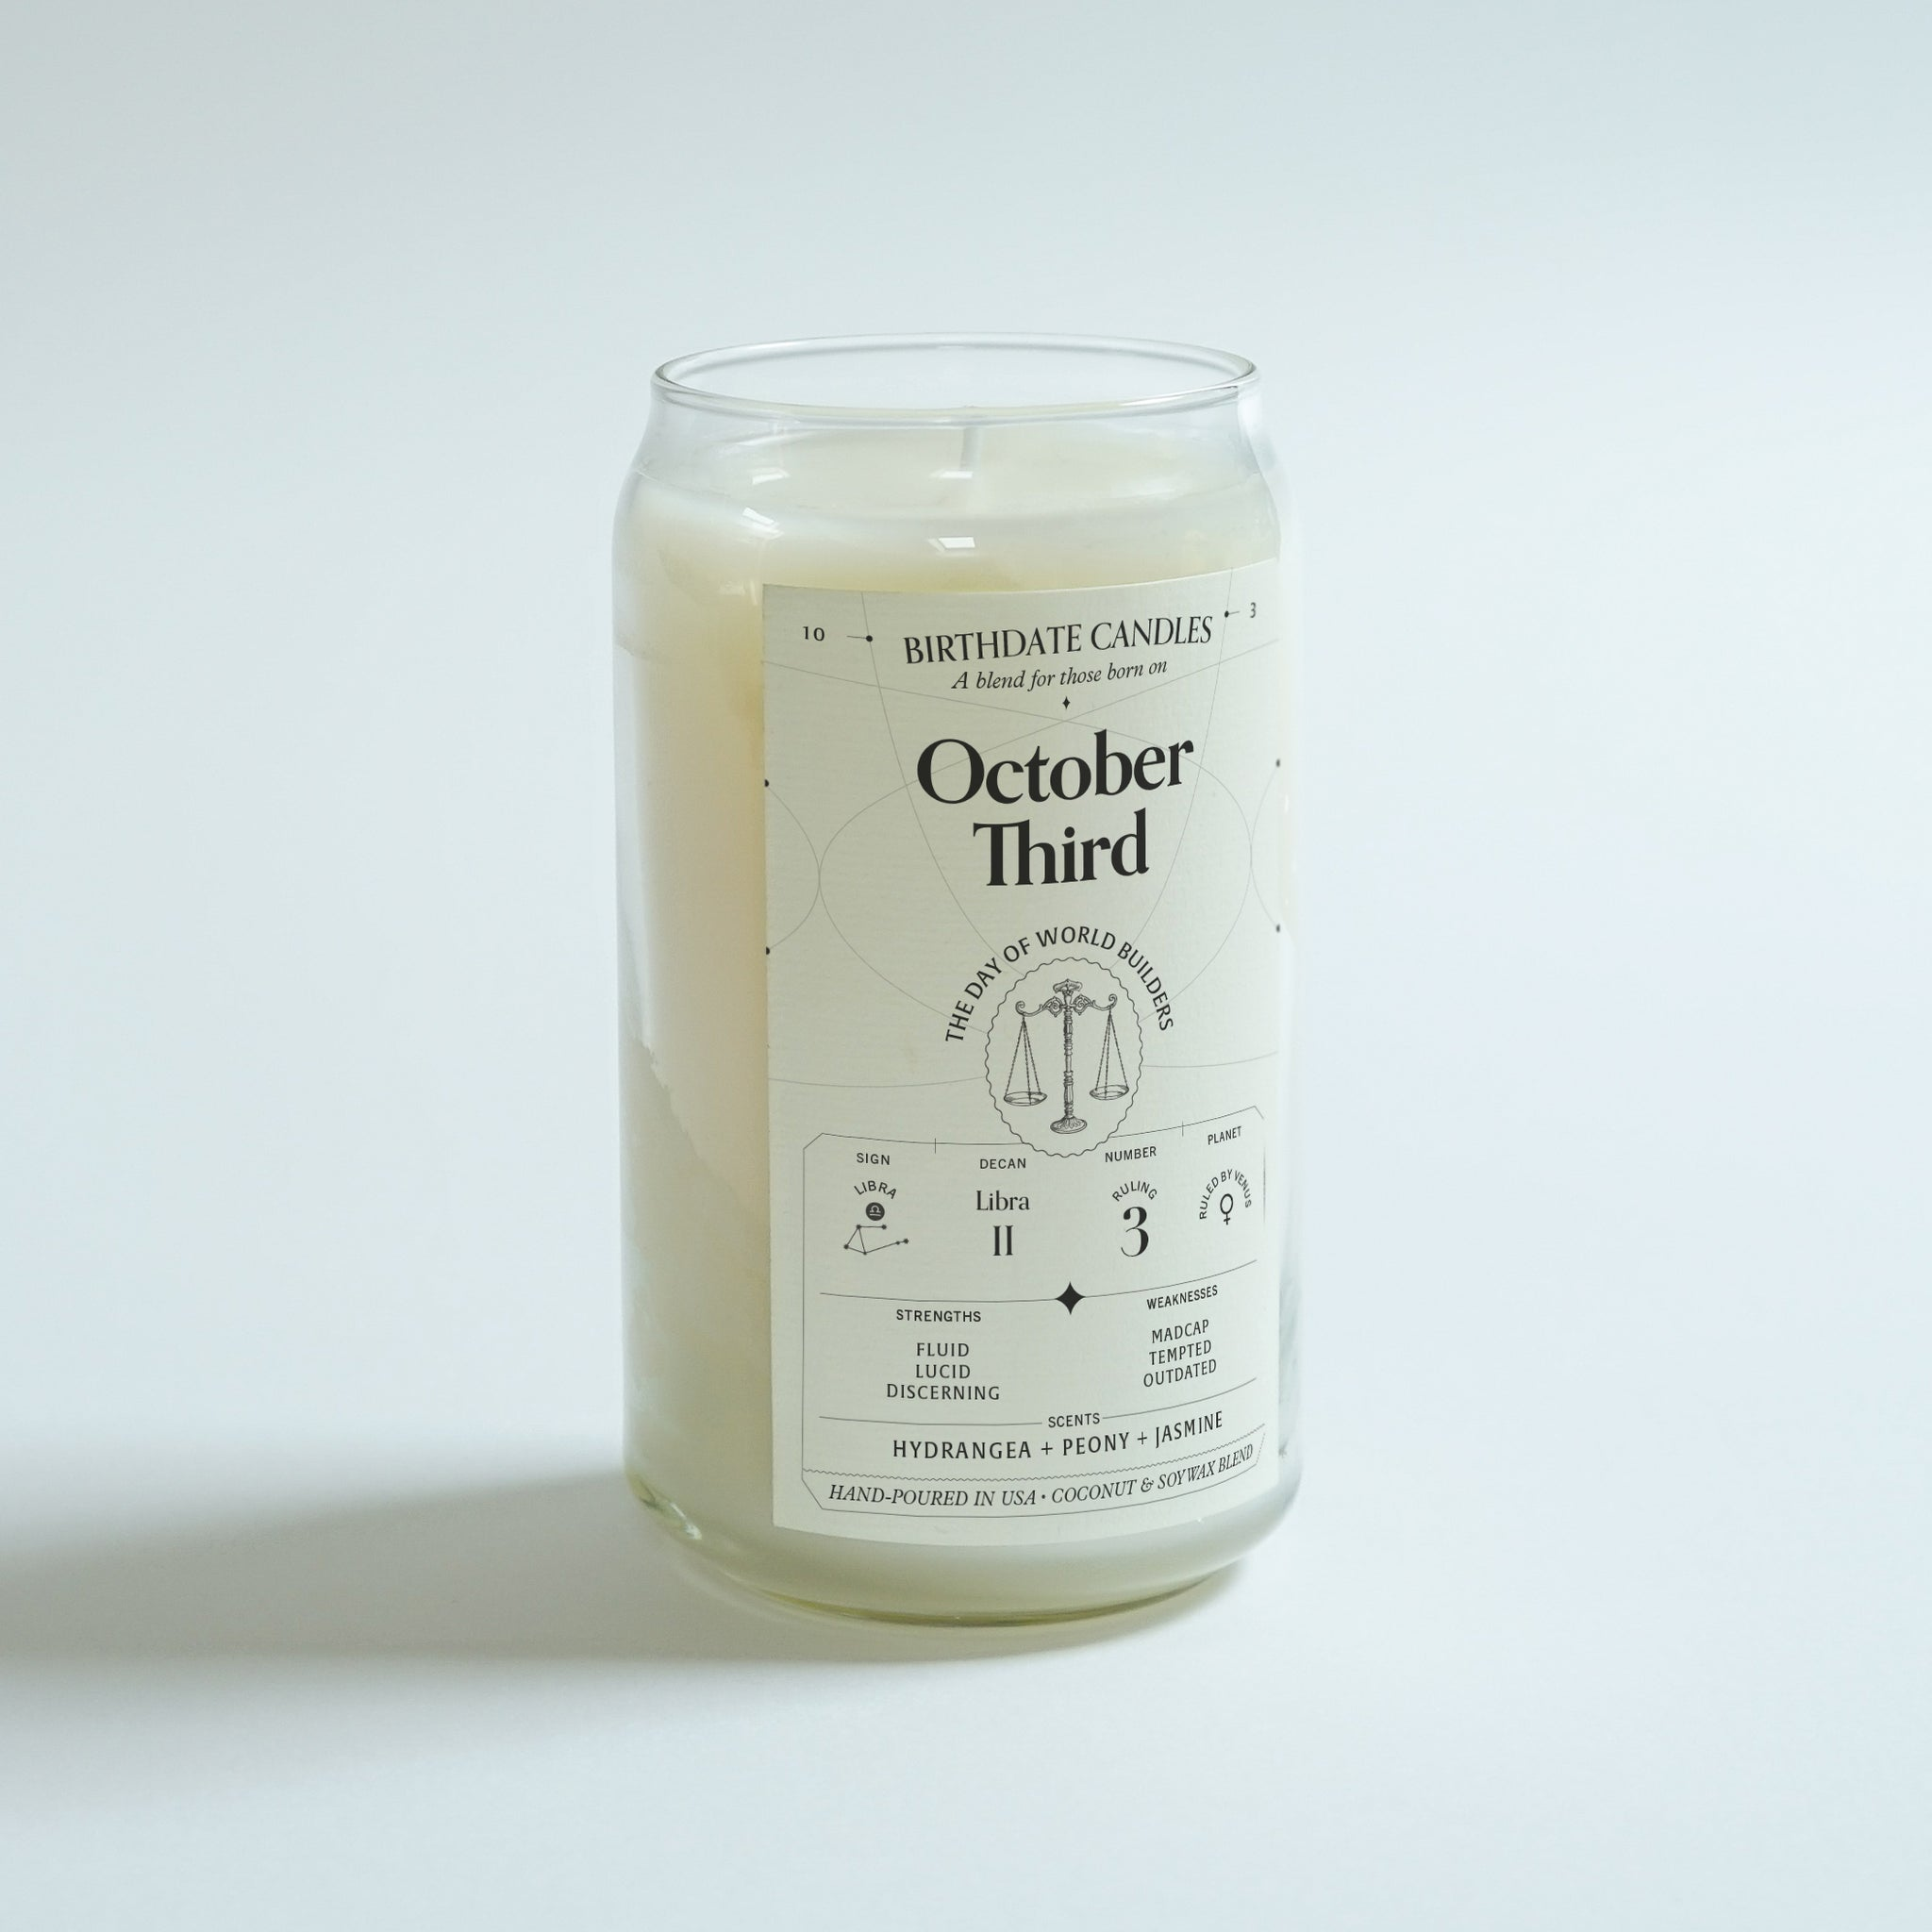 The October Third Candle